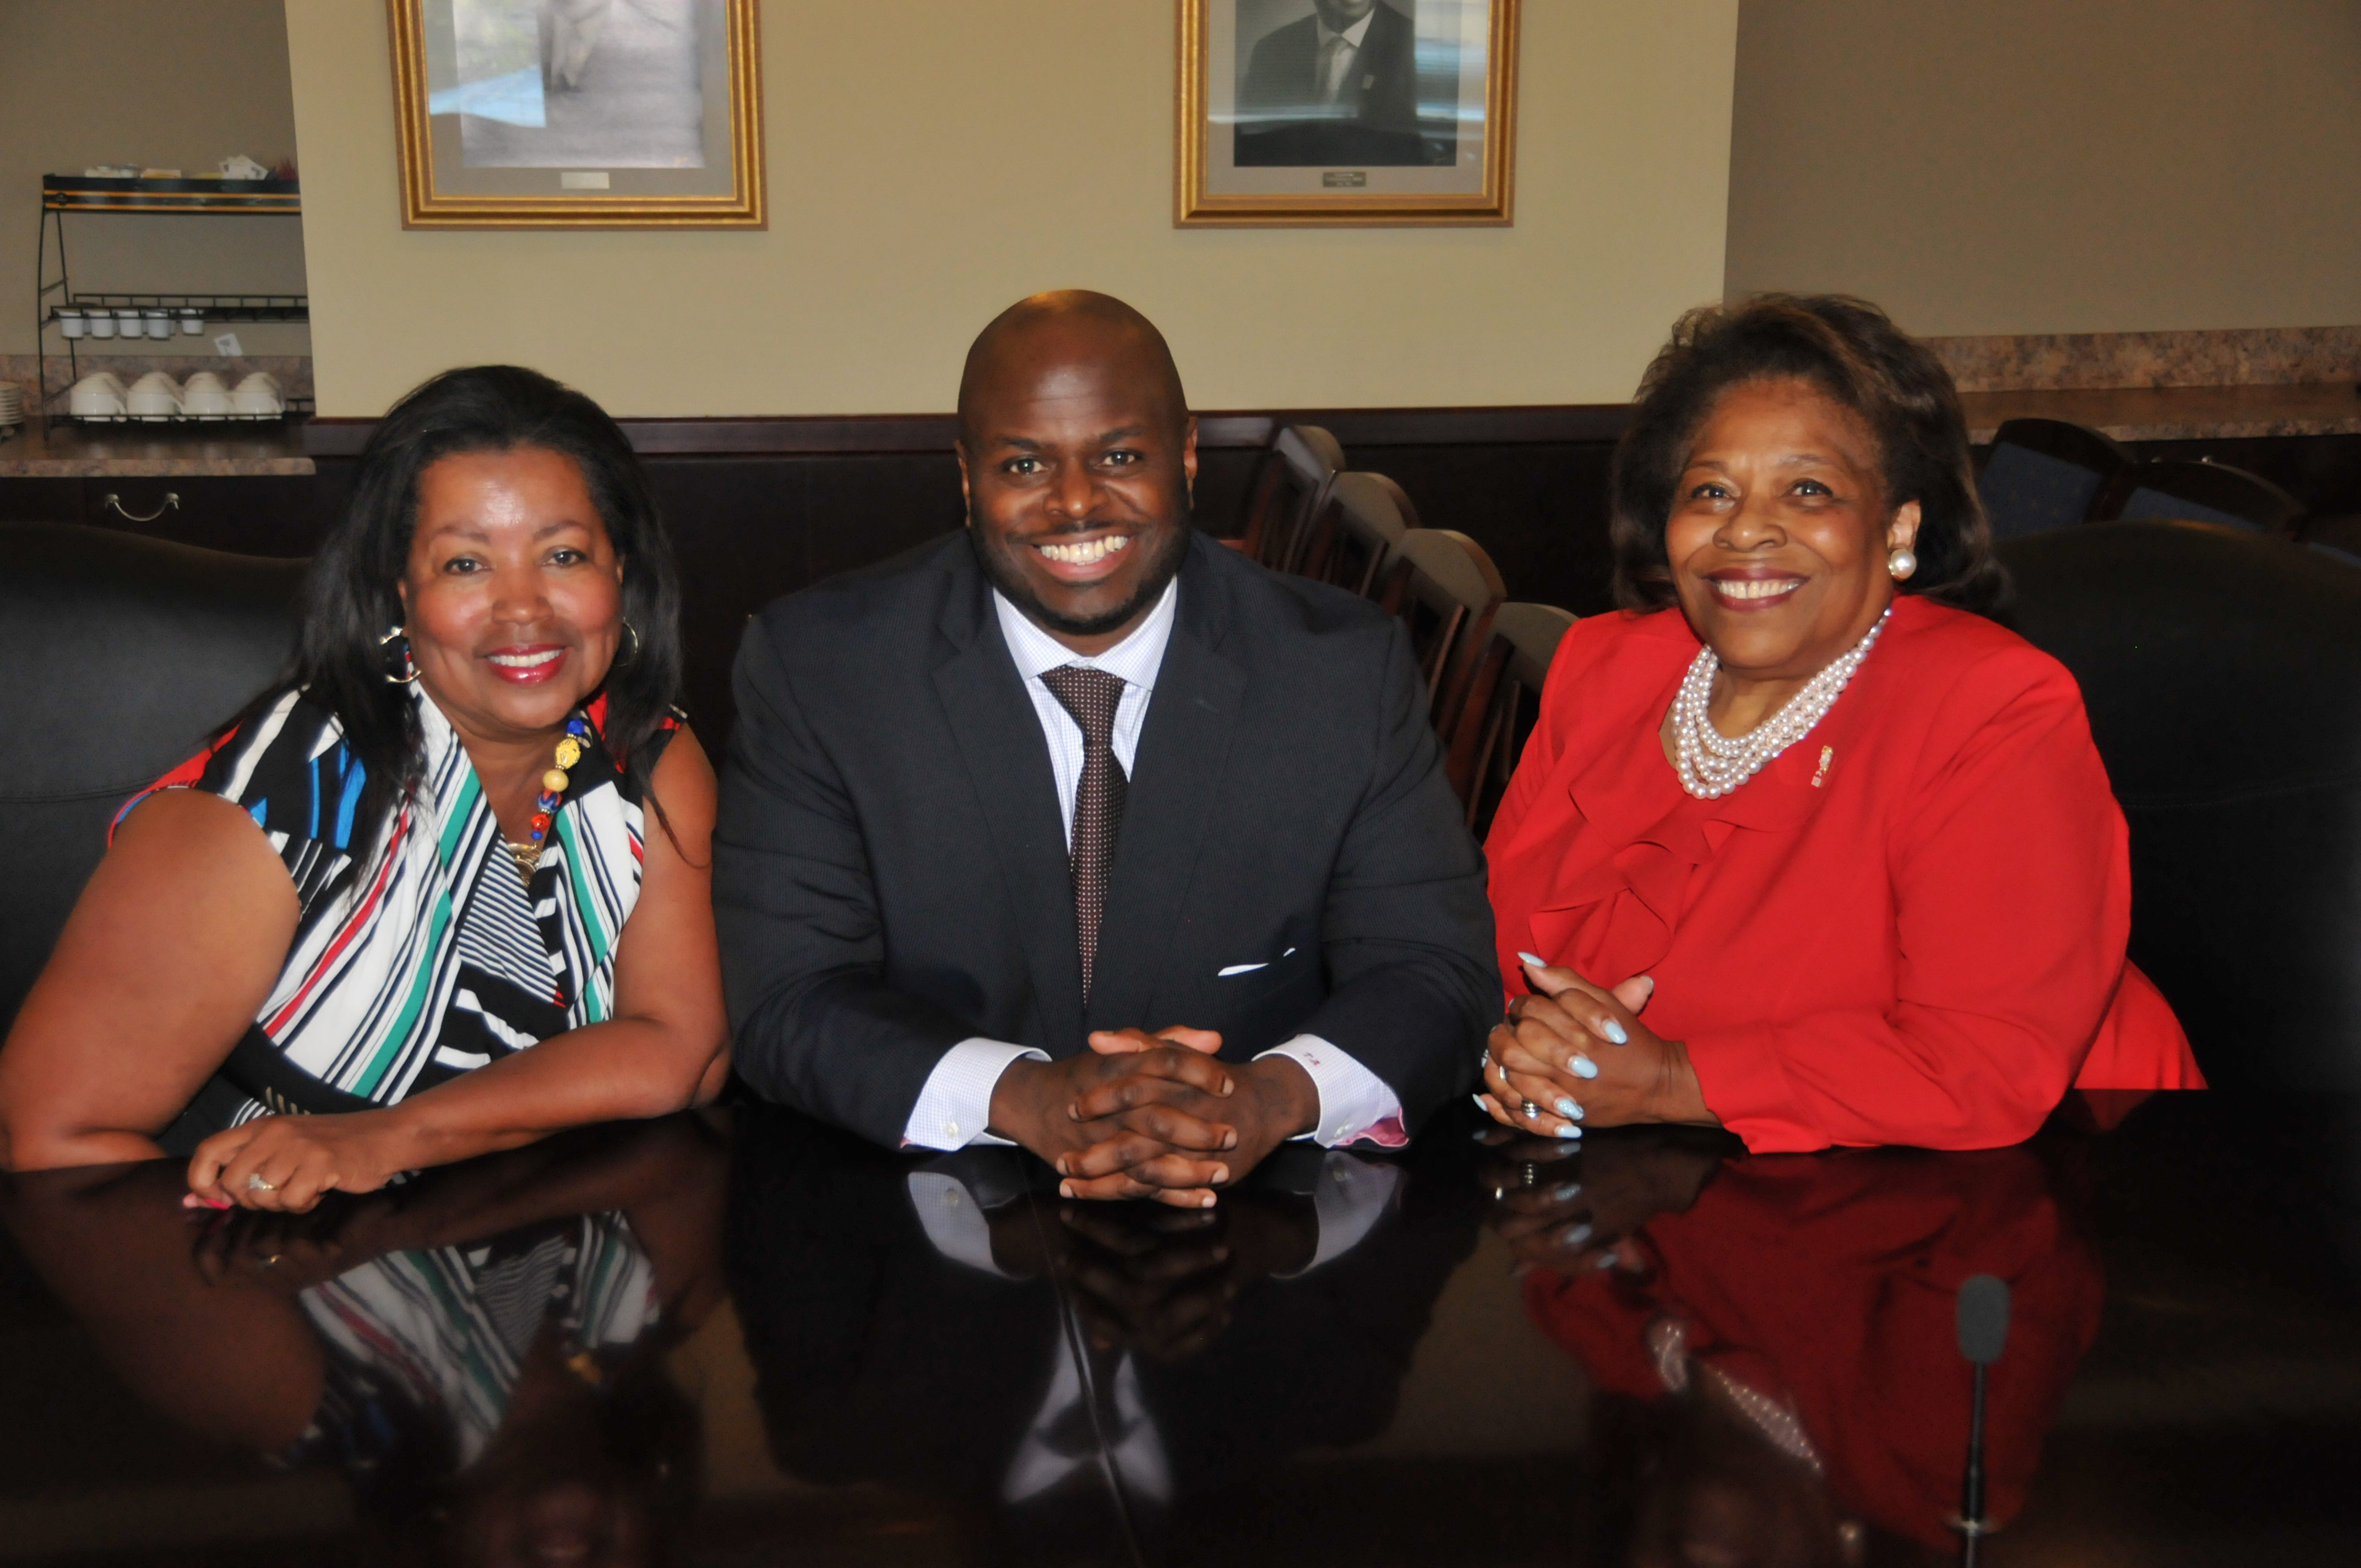 Board Vice Chair Dr. Devona Williams, Provost Dr. Tony Allen and Board Chair Dr. Wilma Mishoe.